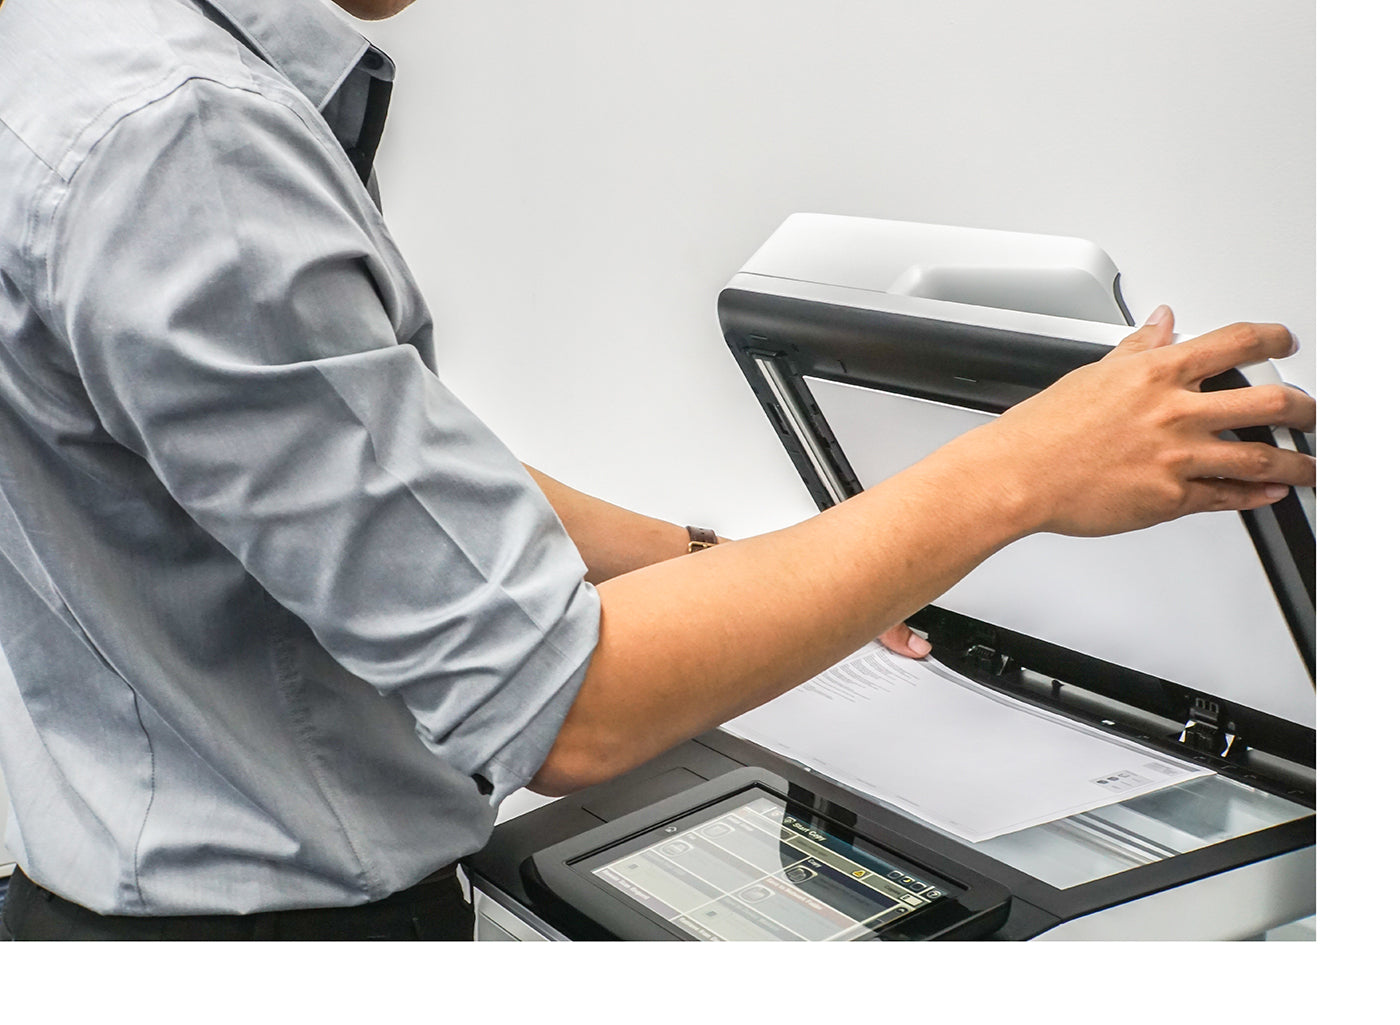 Man using office copier to scan document